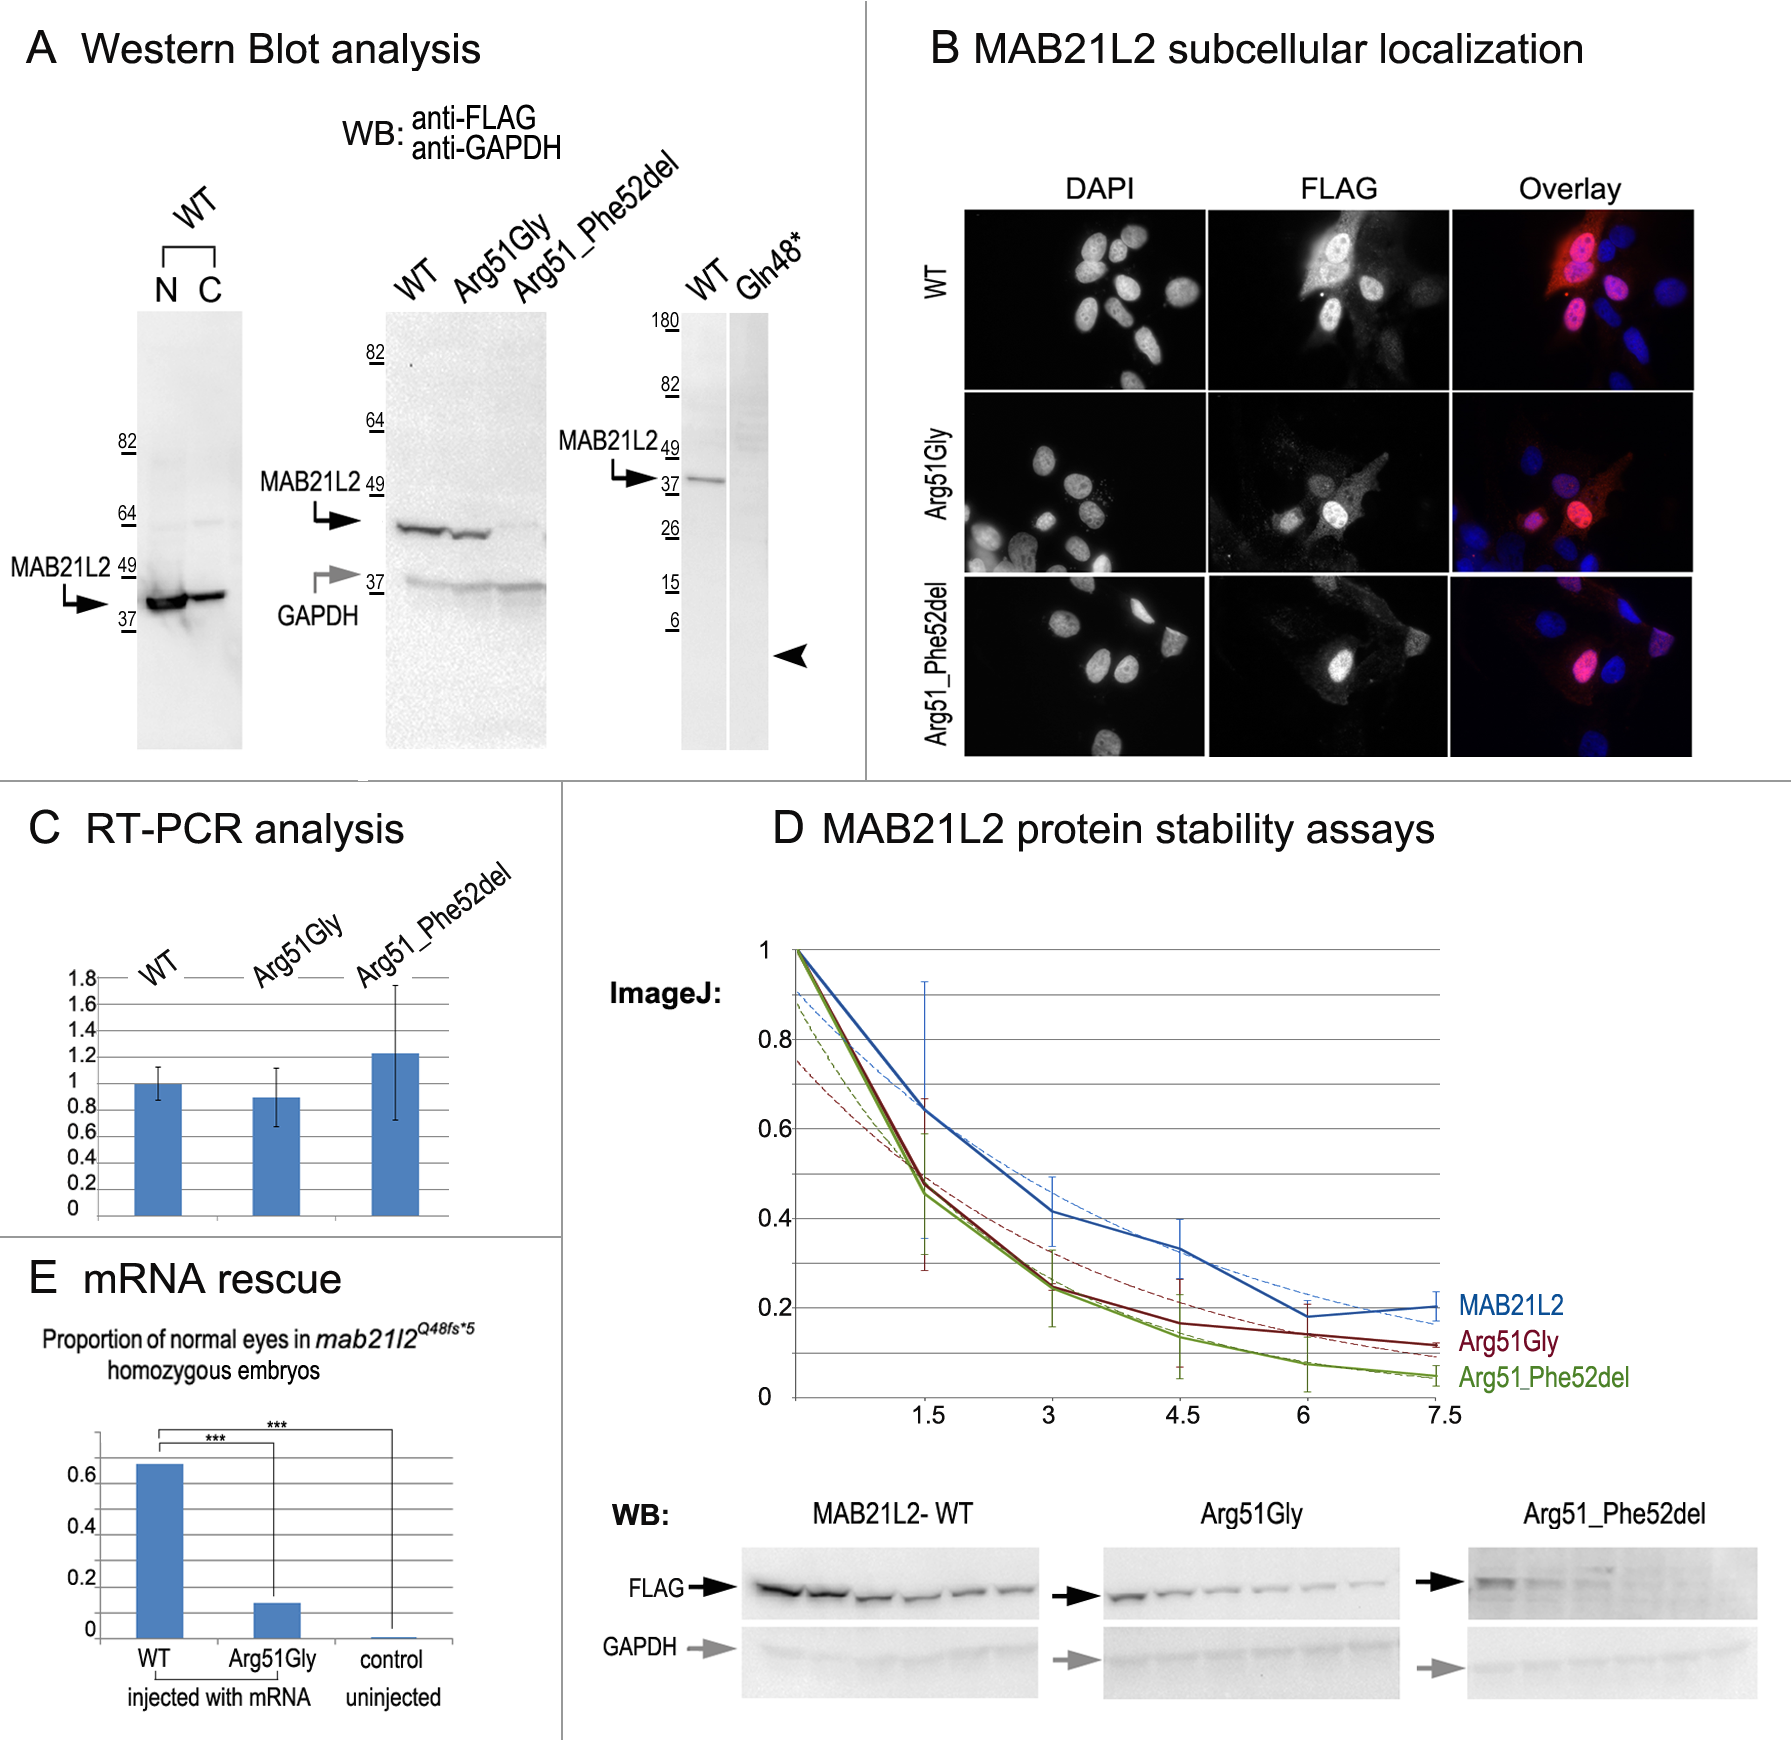 MAB21L2 wild-type and mutant protein studies.